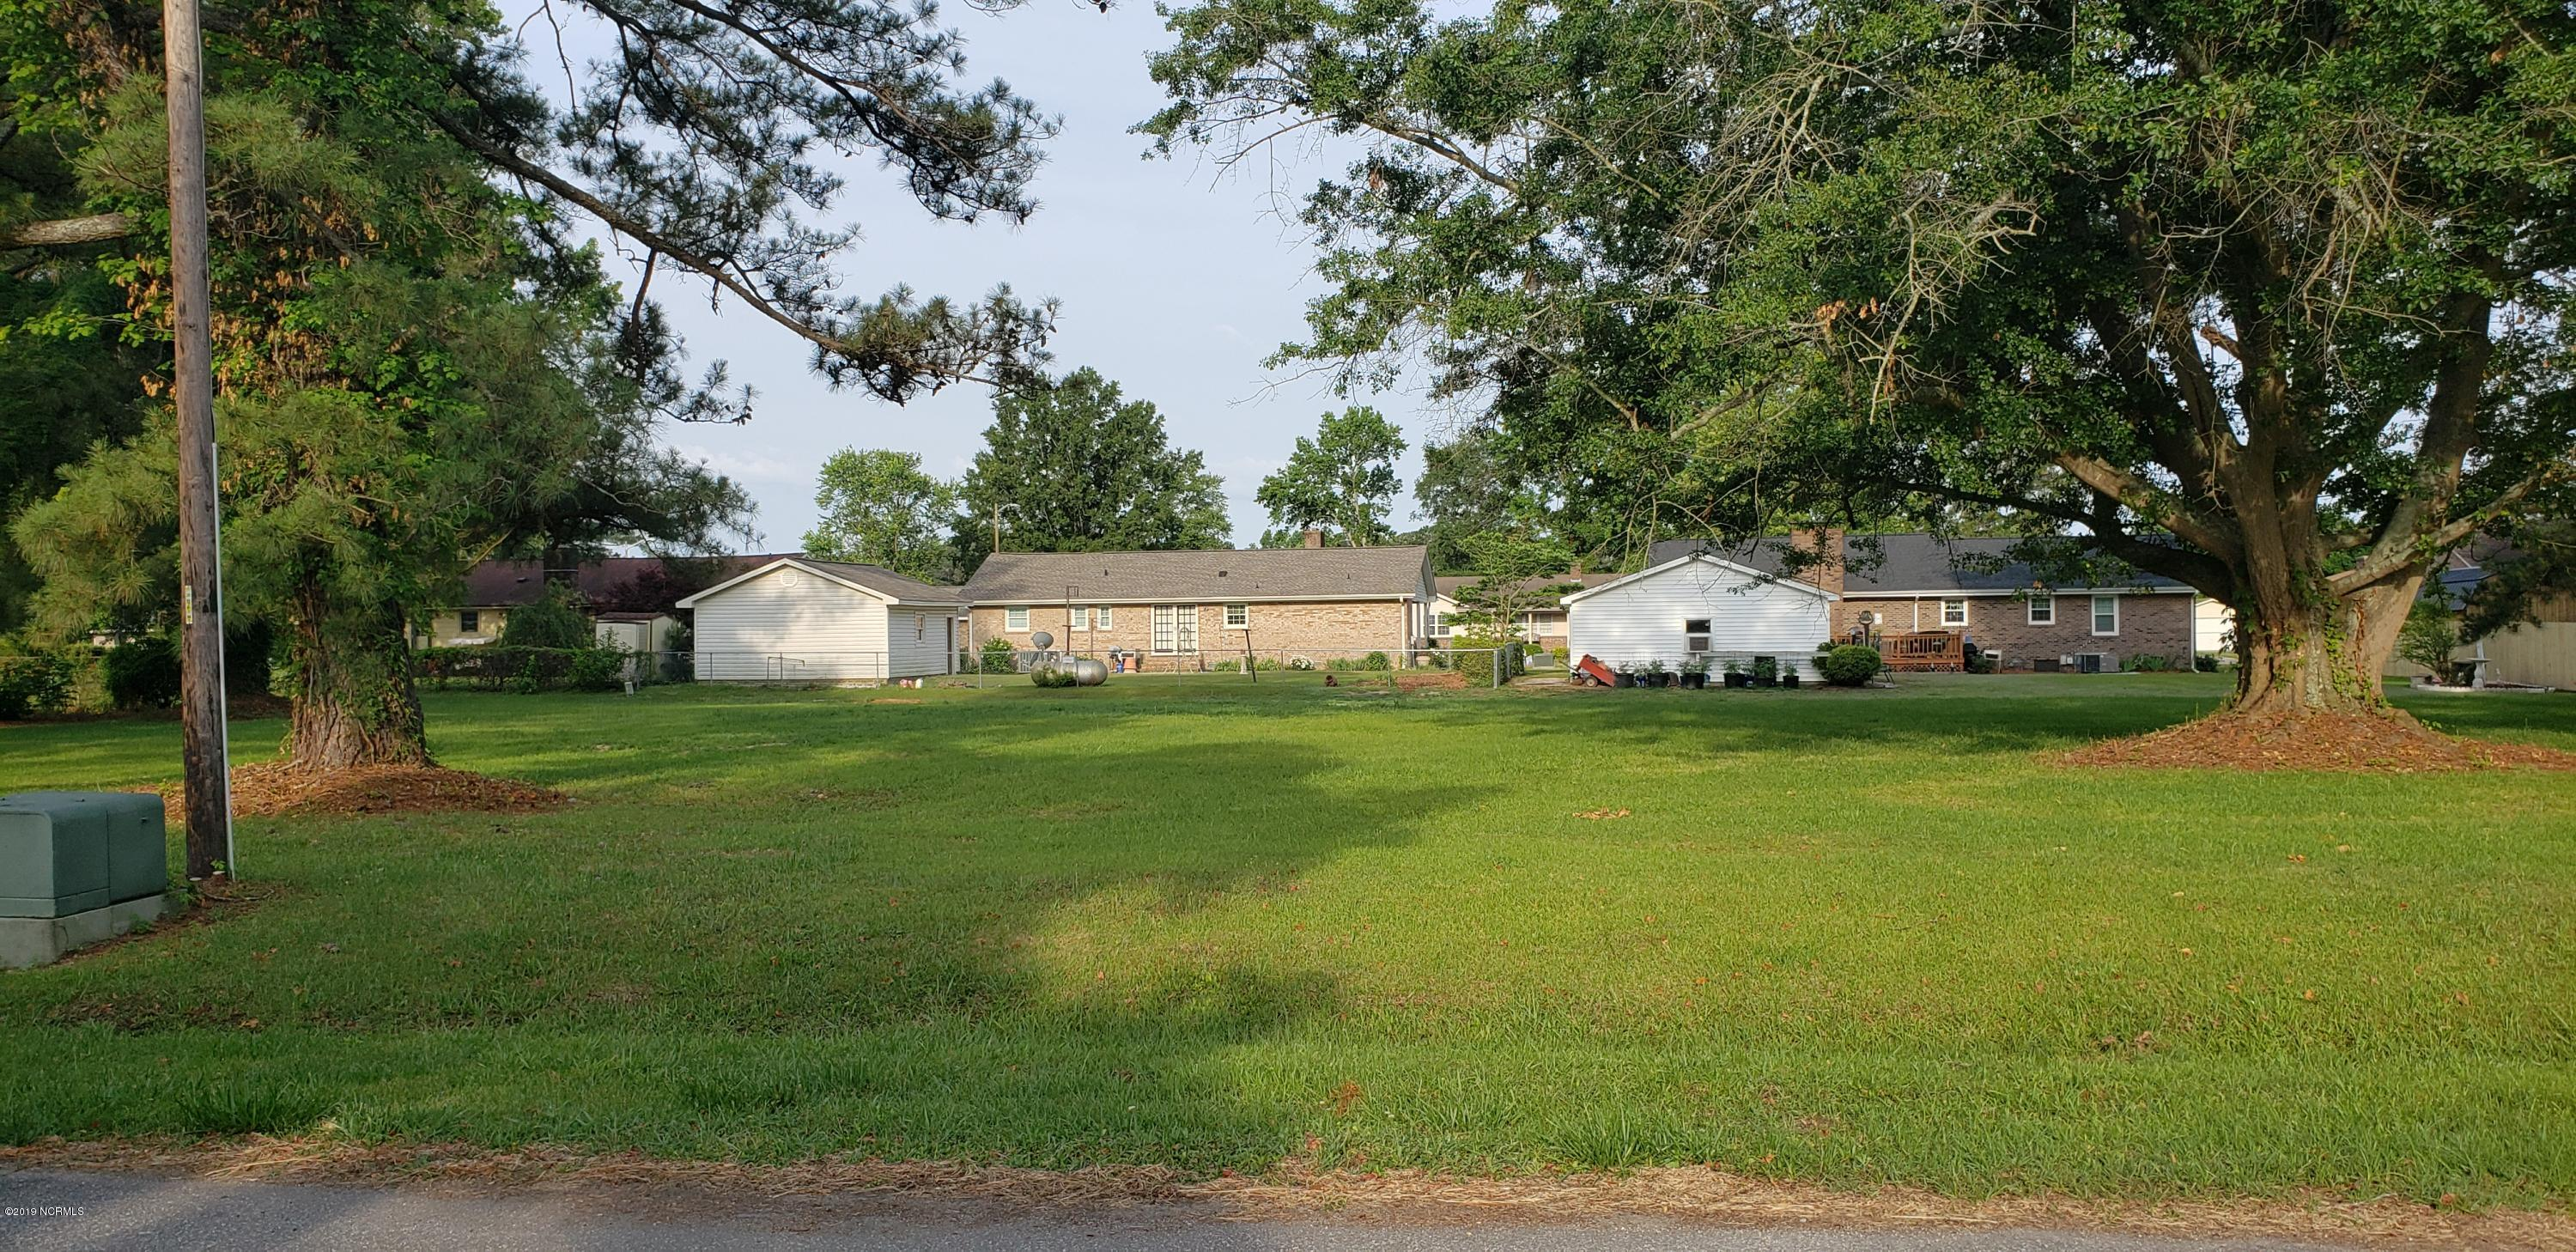 0 Lyndale Drive, Ayden, North Carolina 28513, ,Residential land,For sale,Lyndale Drive,100013646